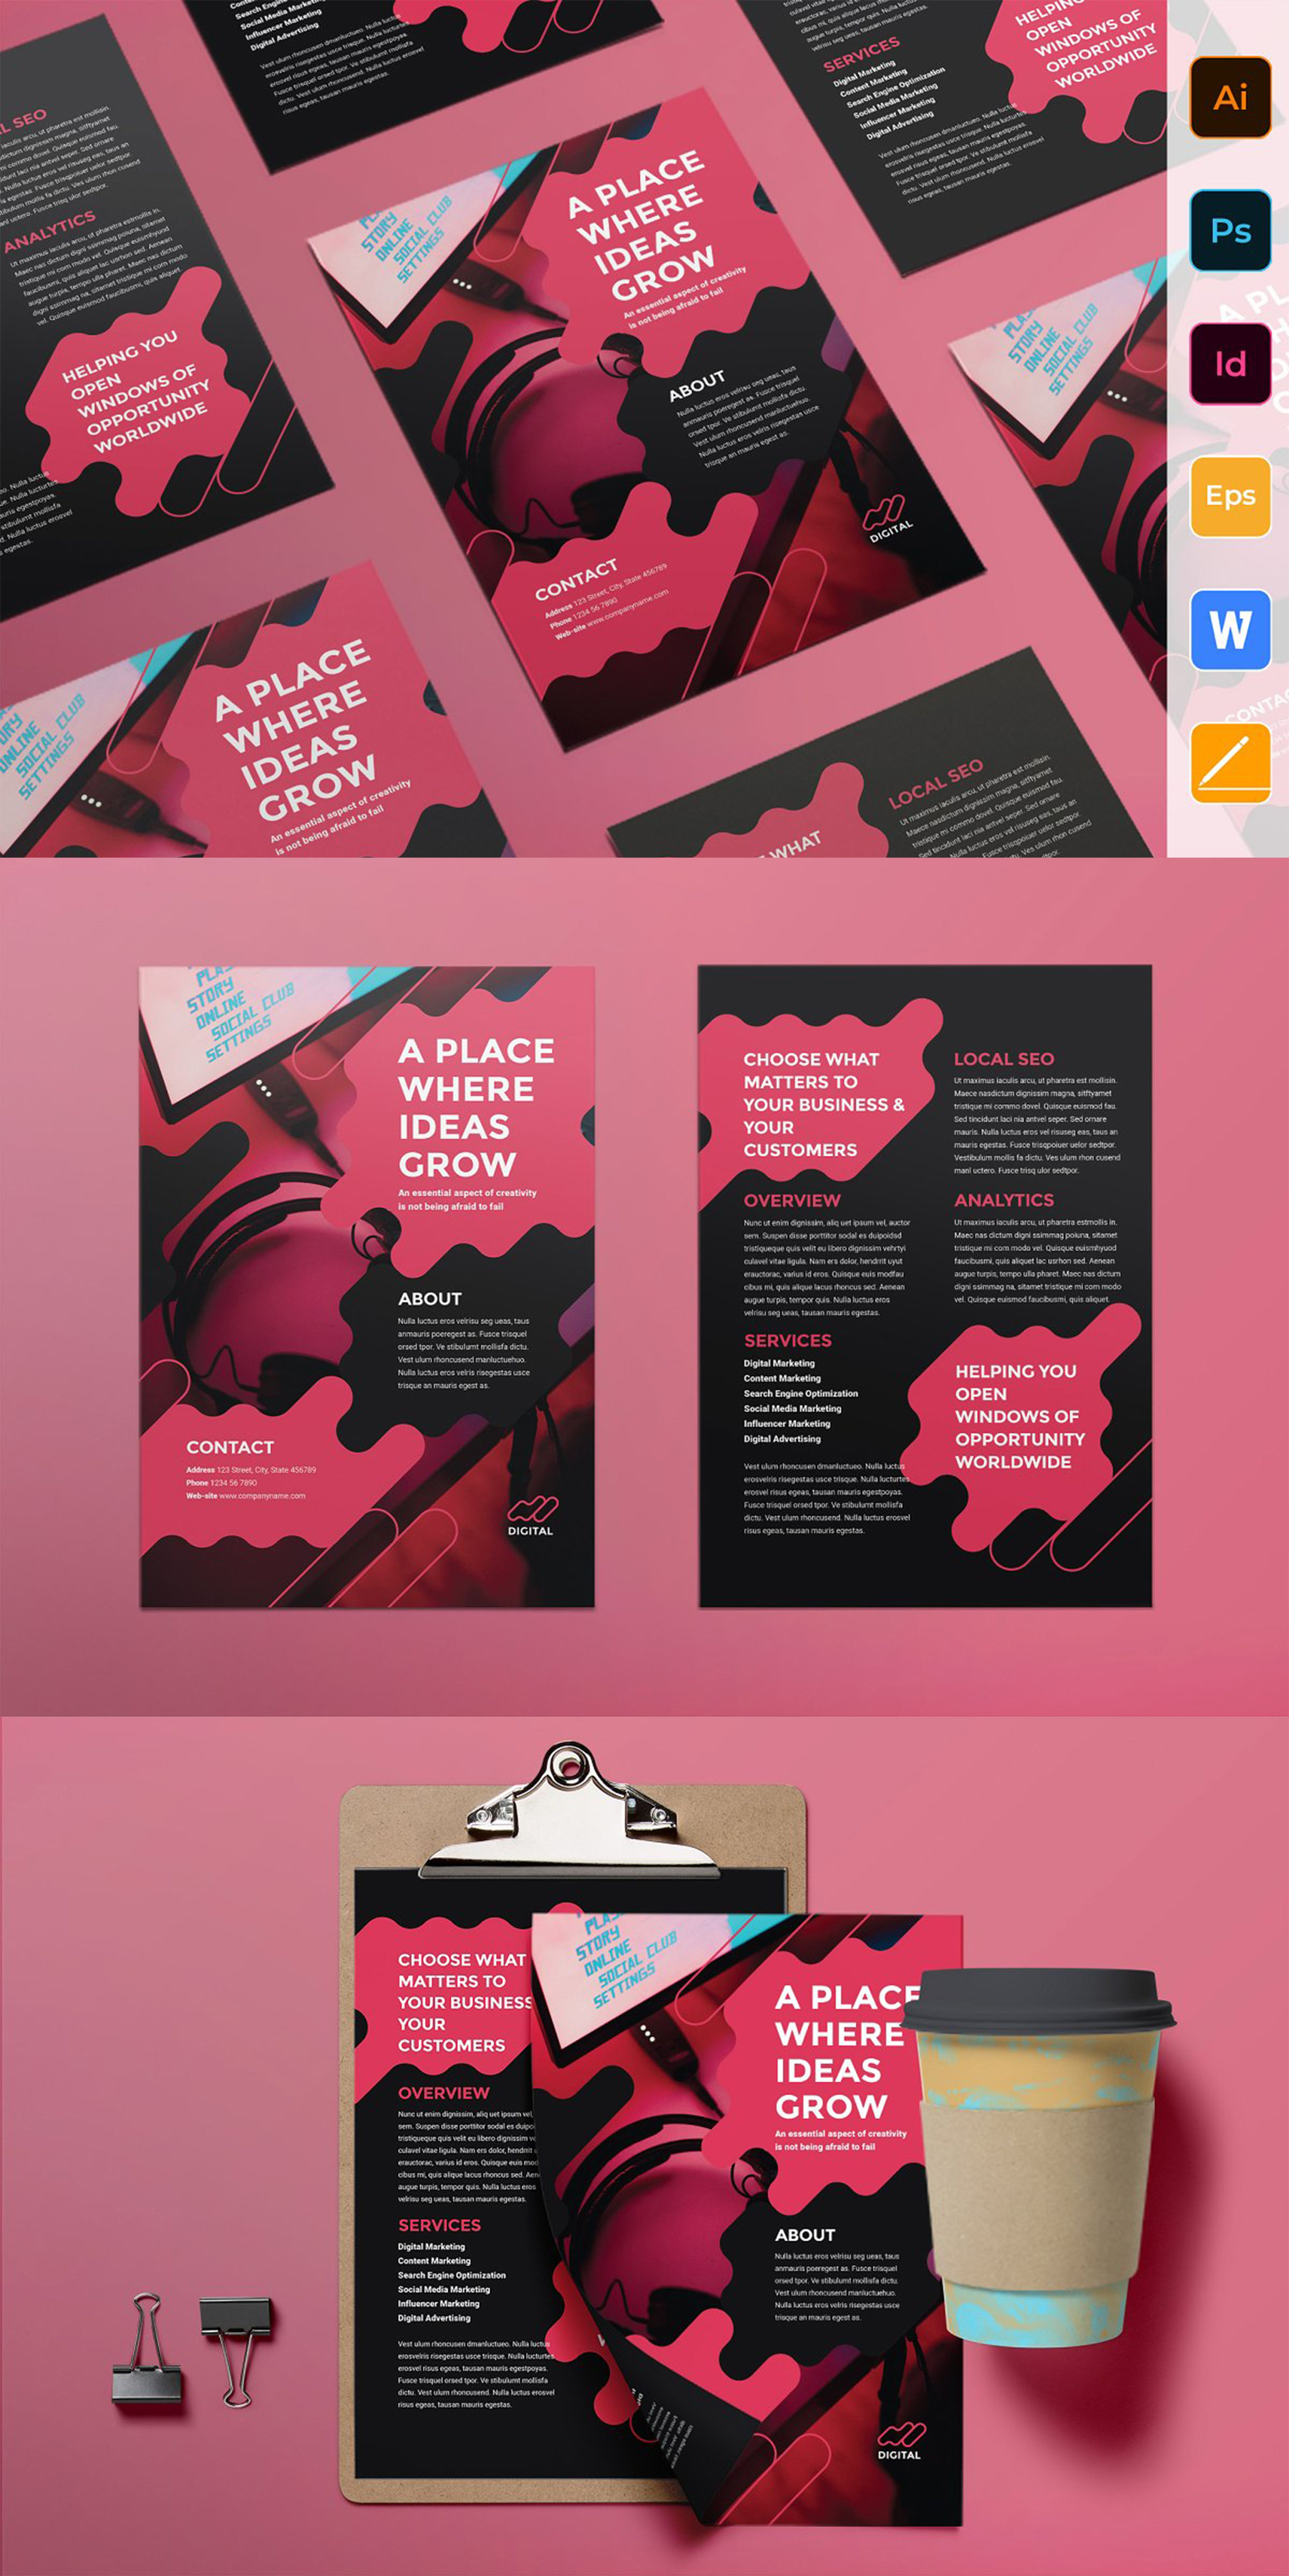 Need Some Inspiration To Create A Perfect Event Flyer Check Out Some Of These New Event Flyer Examp Event Poster Design Flyer Design Advertising Design Layout